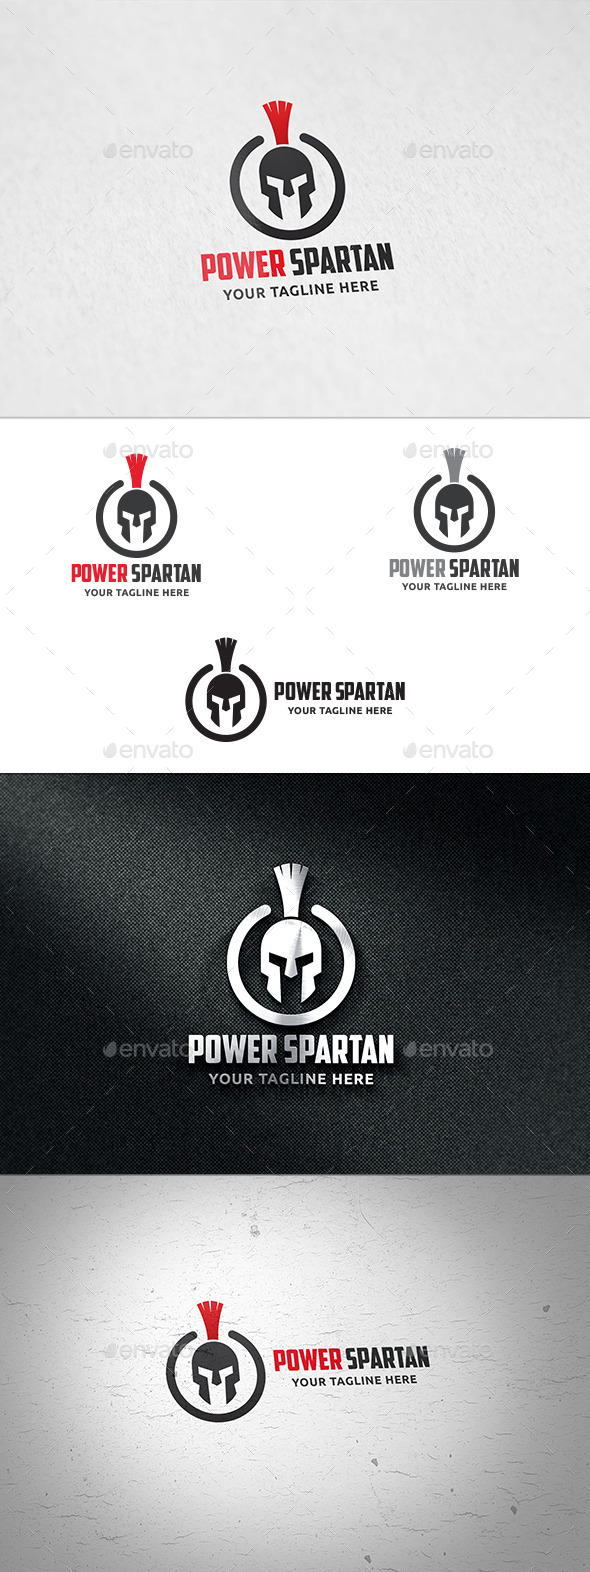 Power Spartan Logo Template